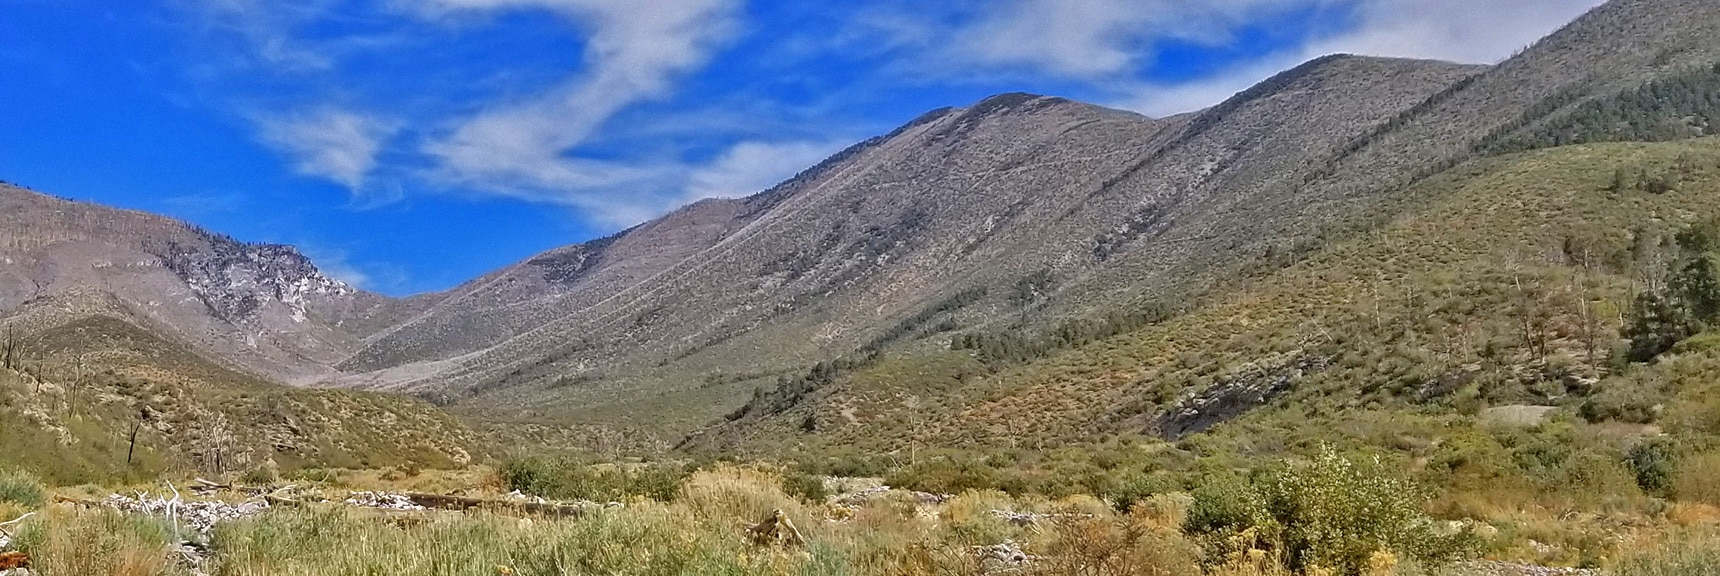 Potential Approach Ridges to Harris Mountain Summit | Harris Mountain from Lovell Canyon Nevada